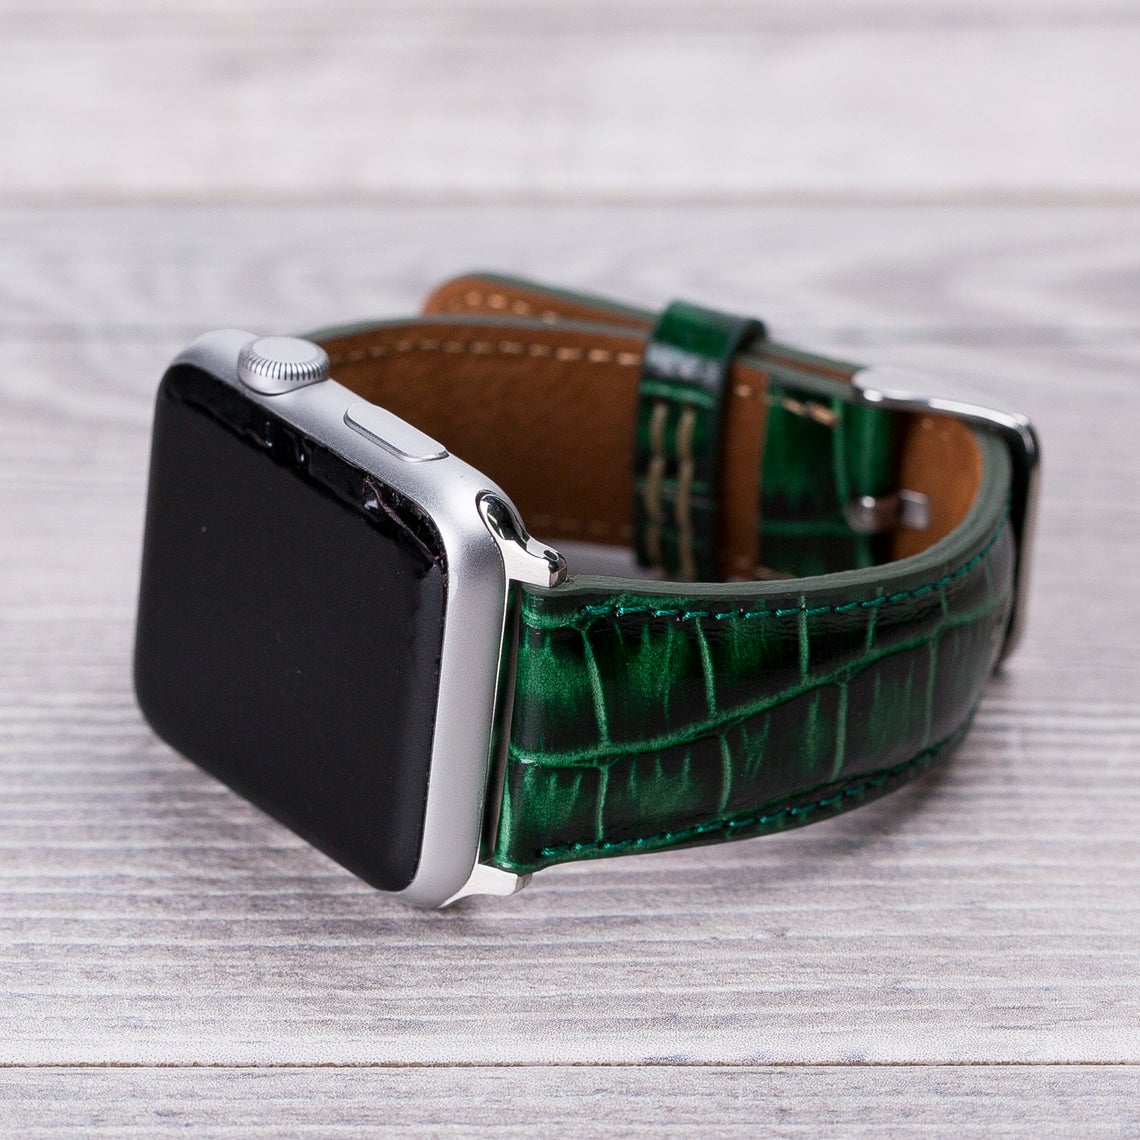 Apple Watch Leather Band Croco Pattern Green